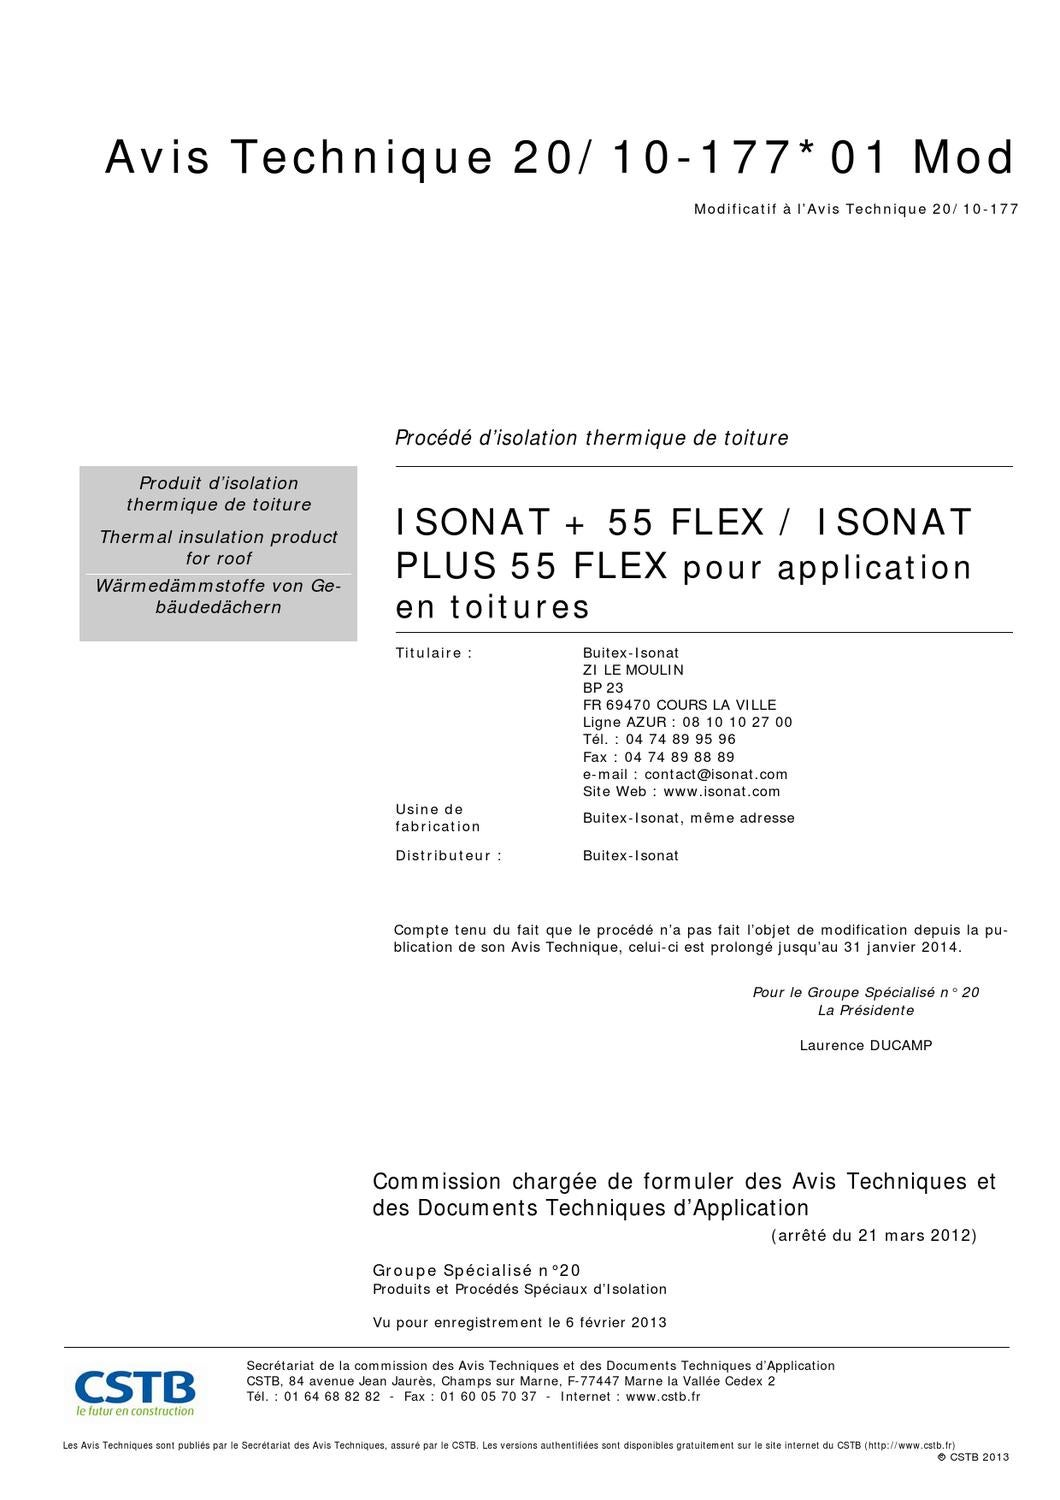 Avis technique cstb isonat plus toitures prolongation by for Isonat plus 55 flex